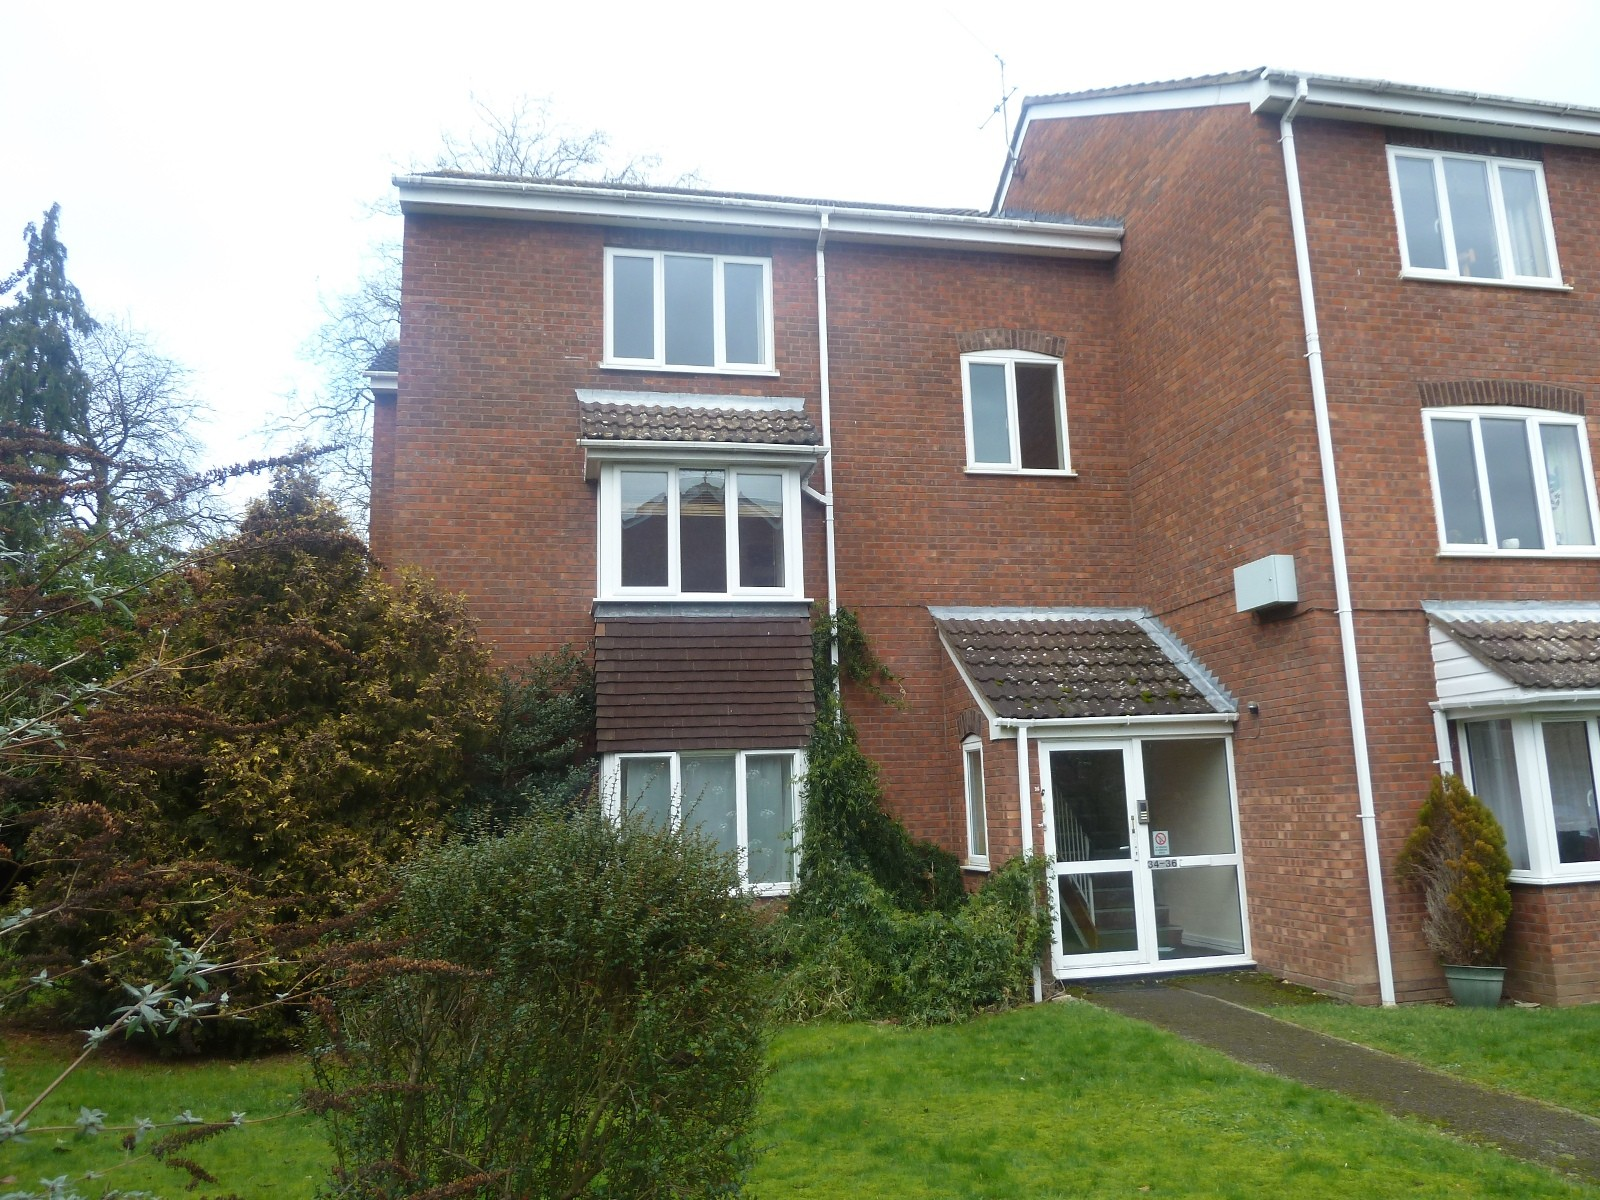 Bexley Court, Reading, RG30 2DY